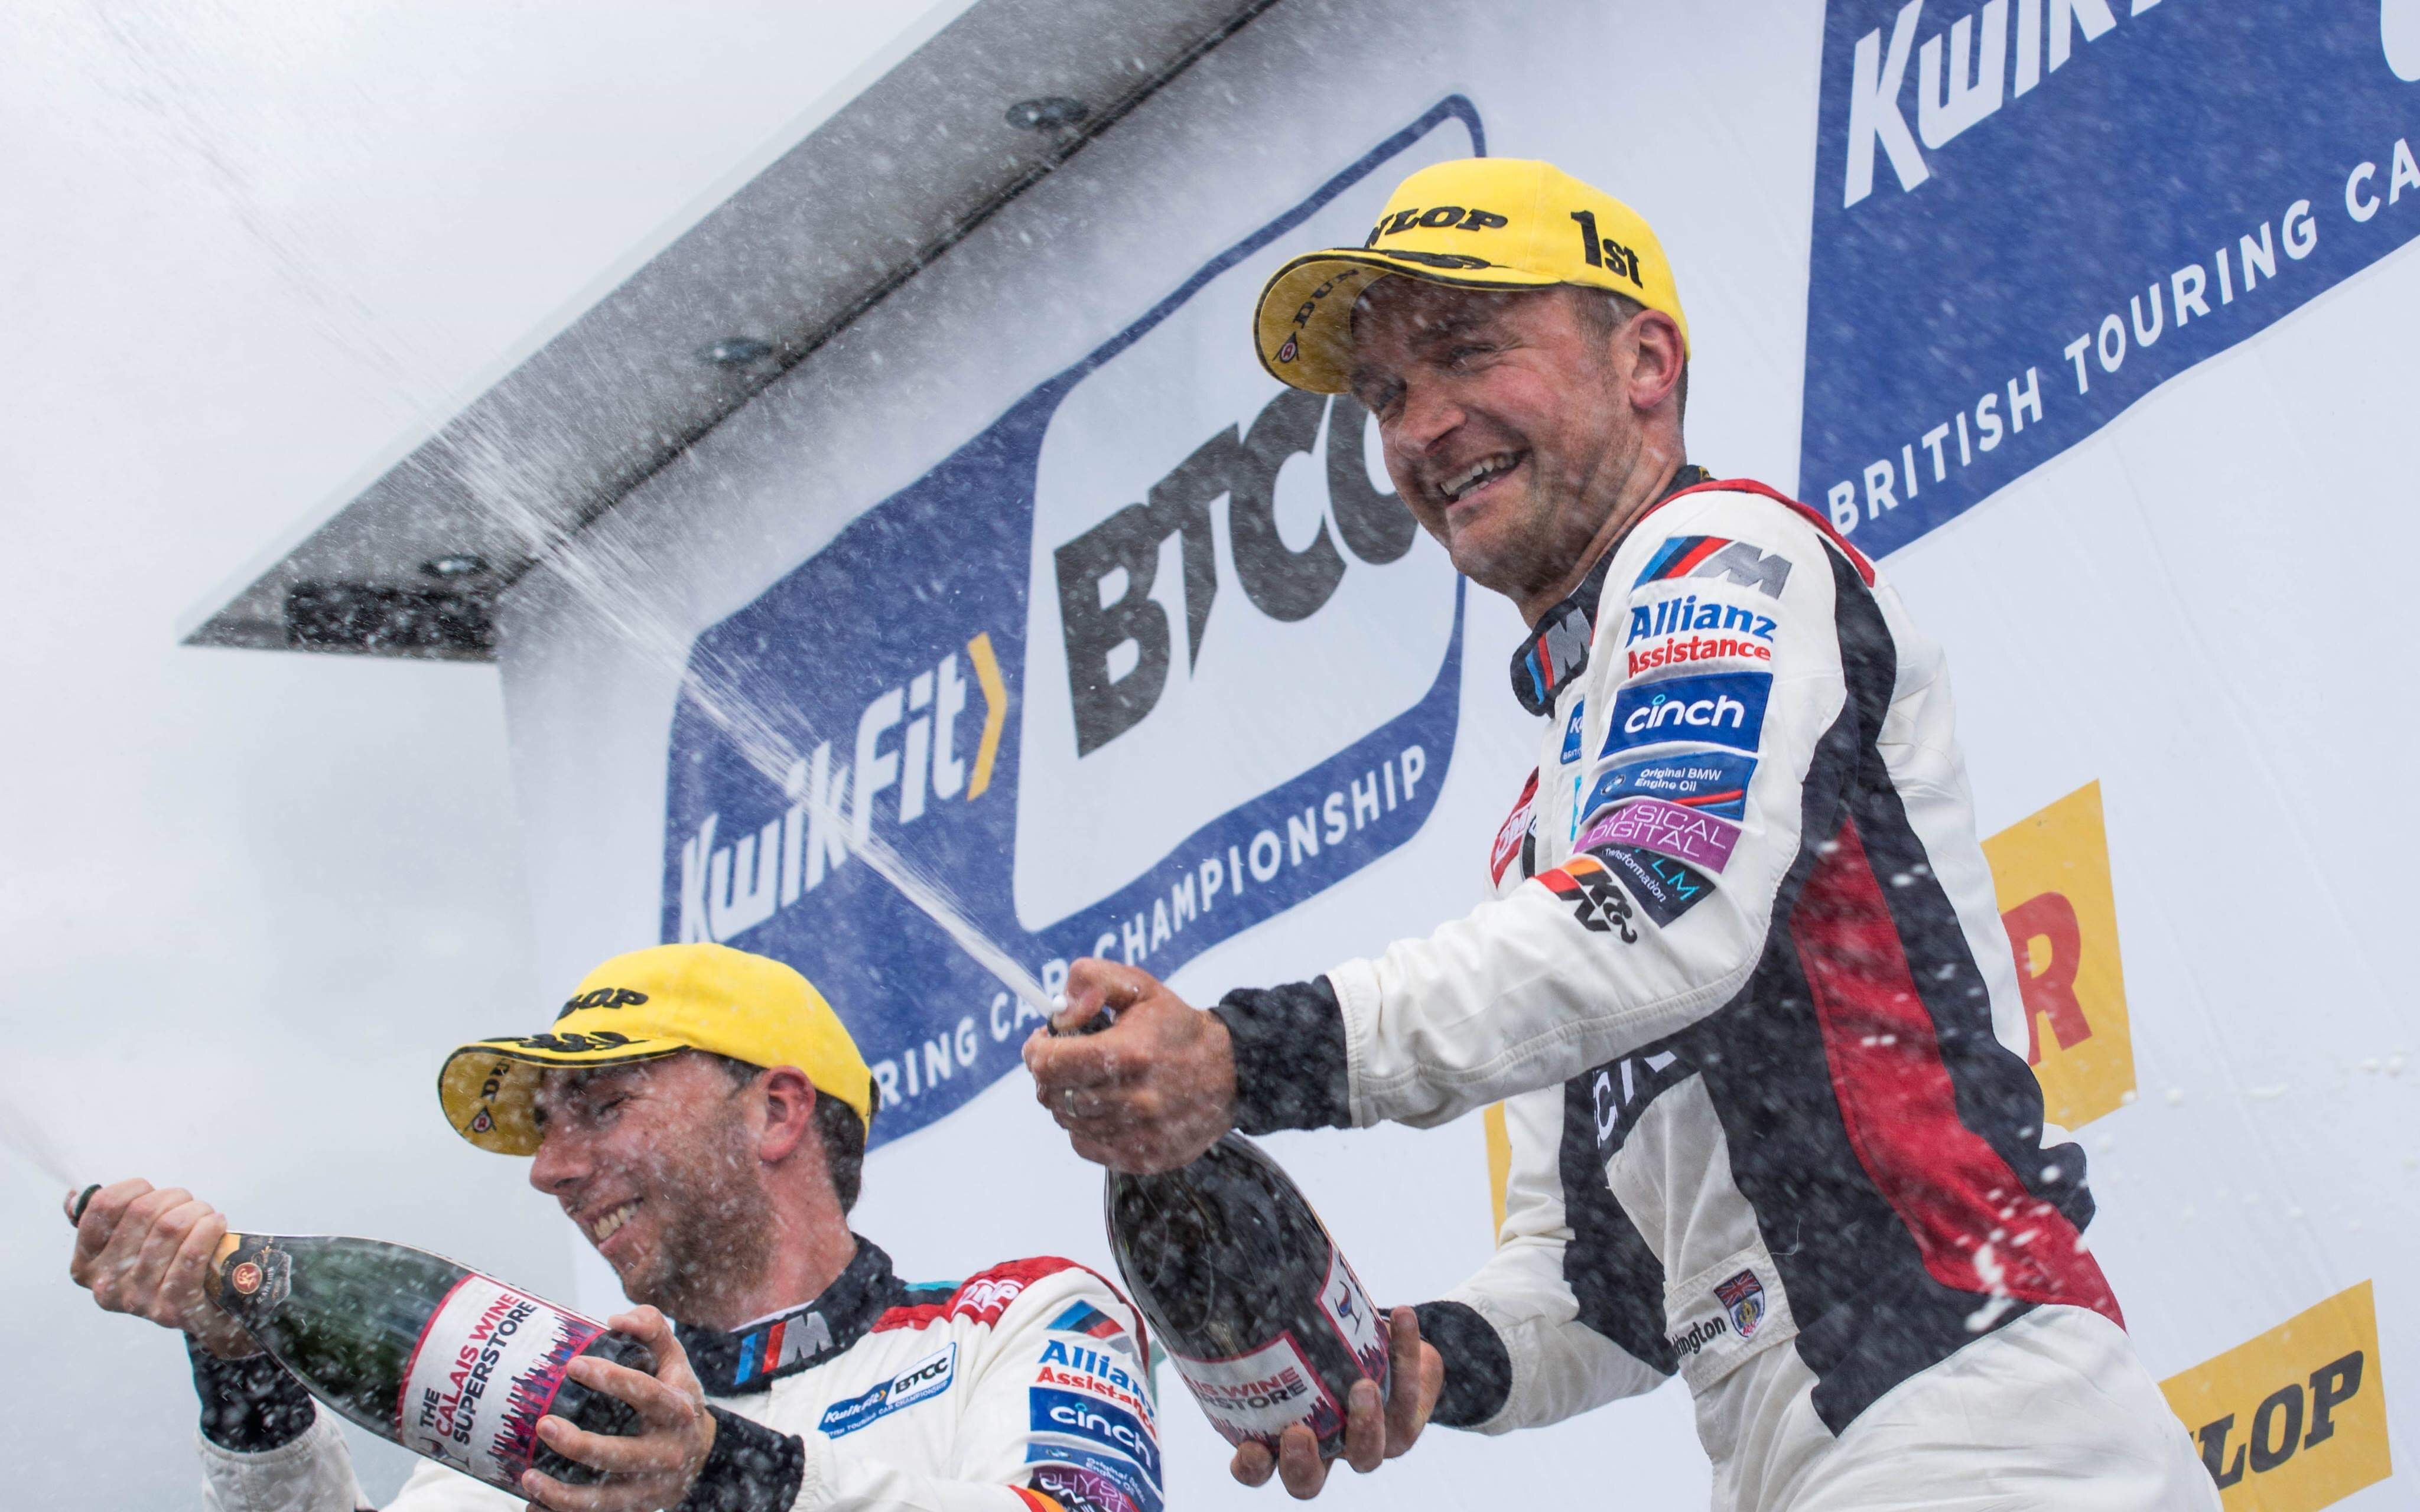 TURKINGTON'S DONINGTON DREAM WITH DOUBLE WIN